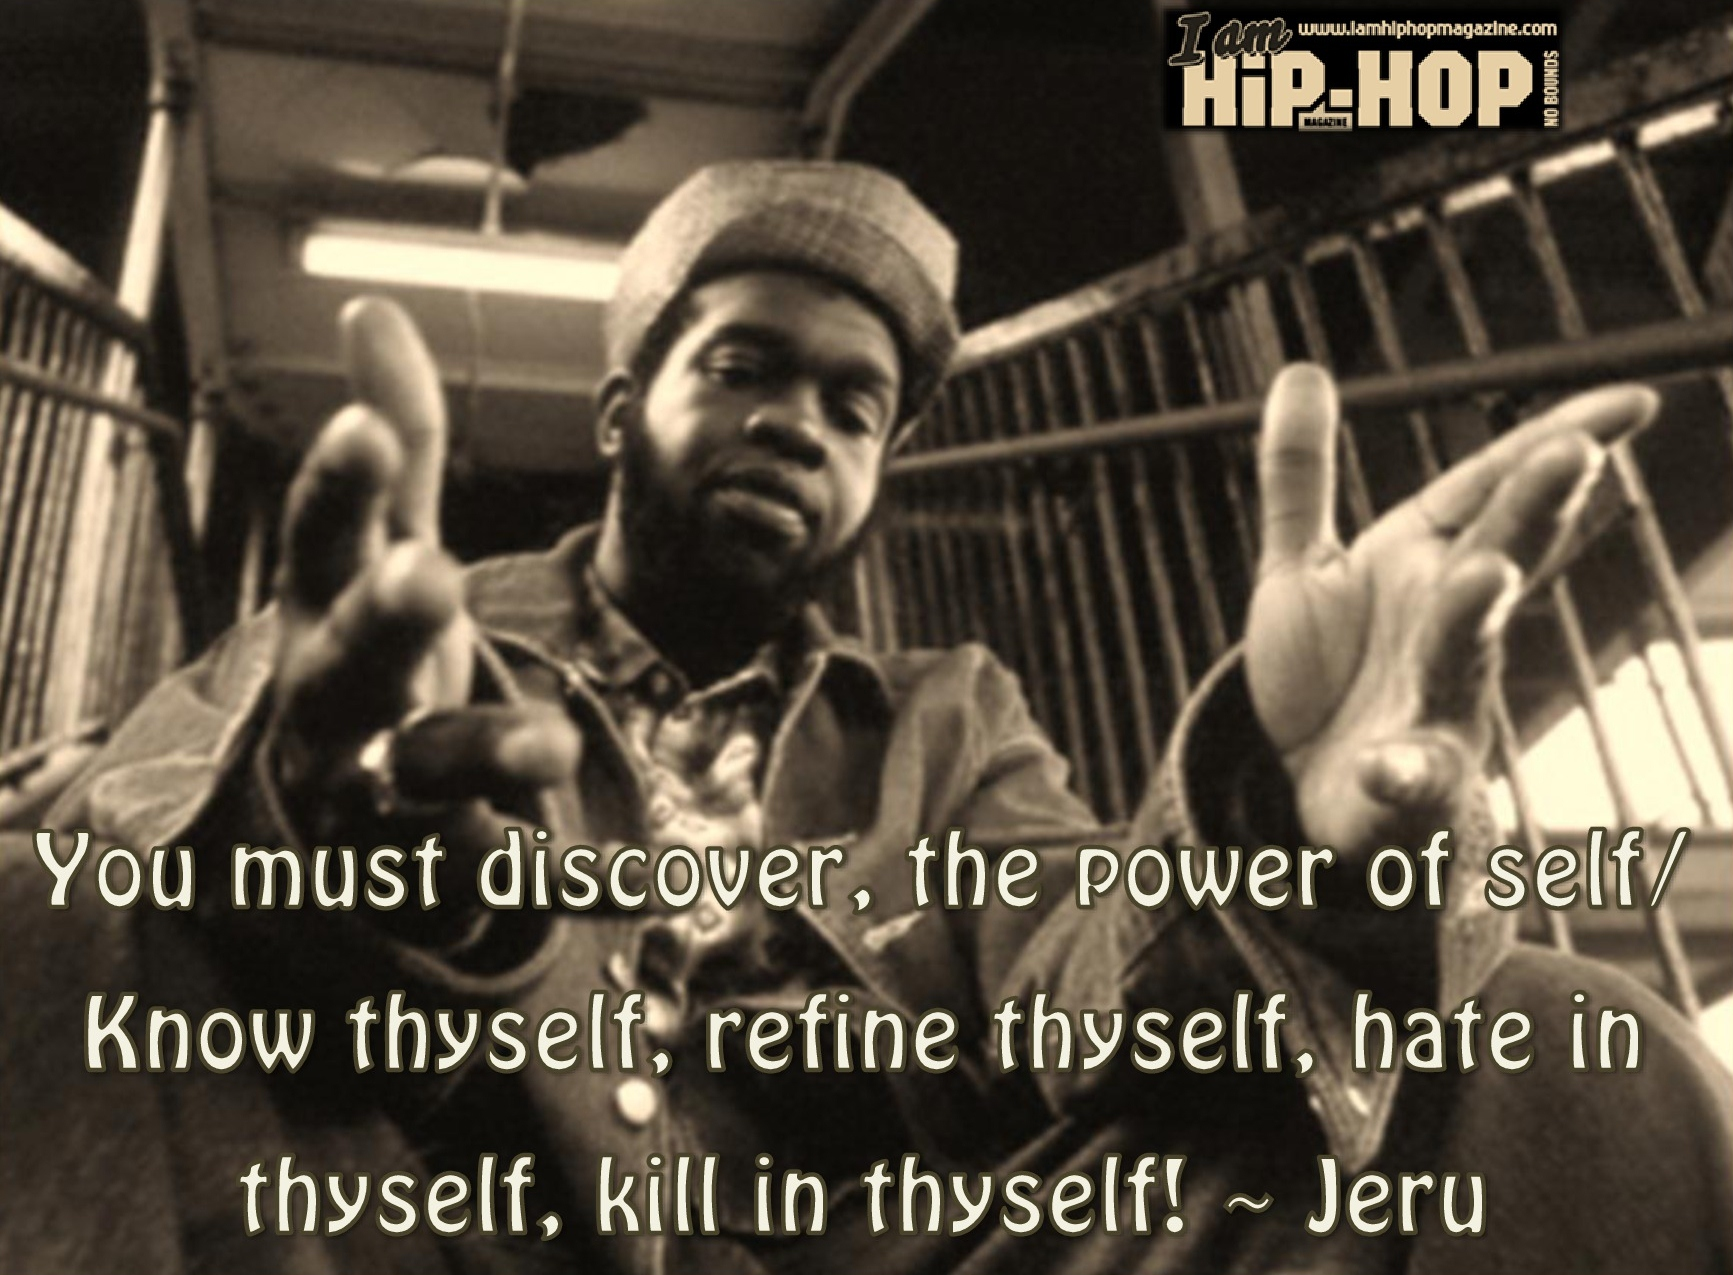 jeru i am hip hop